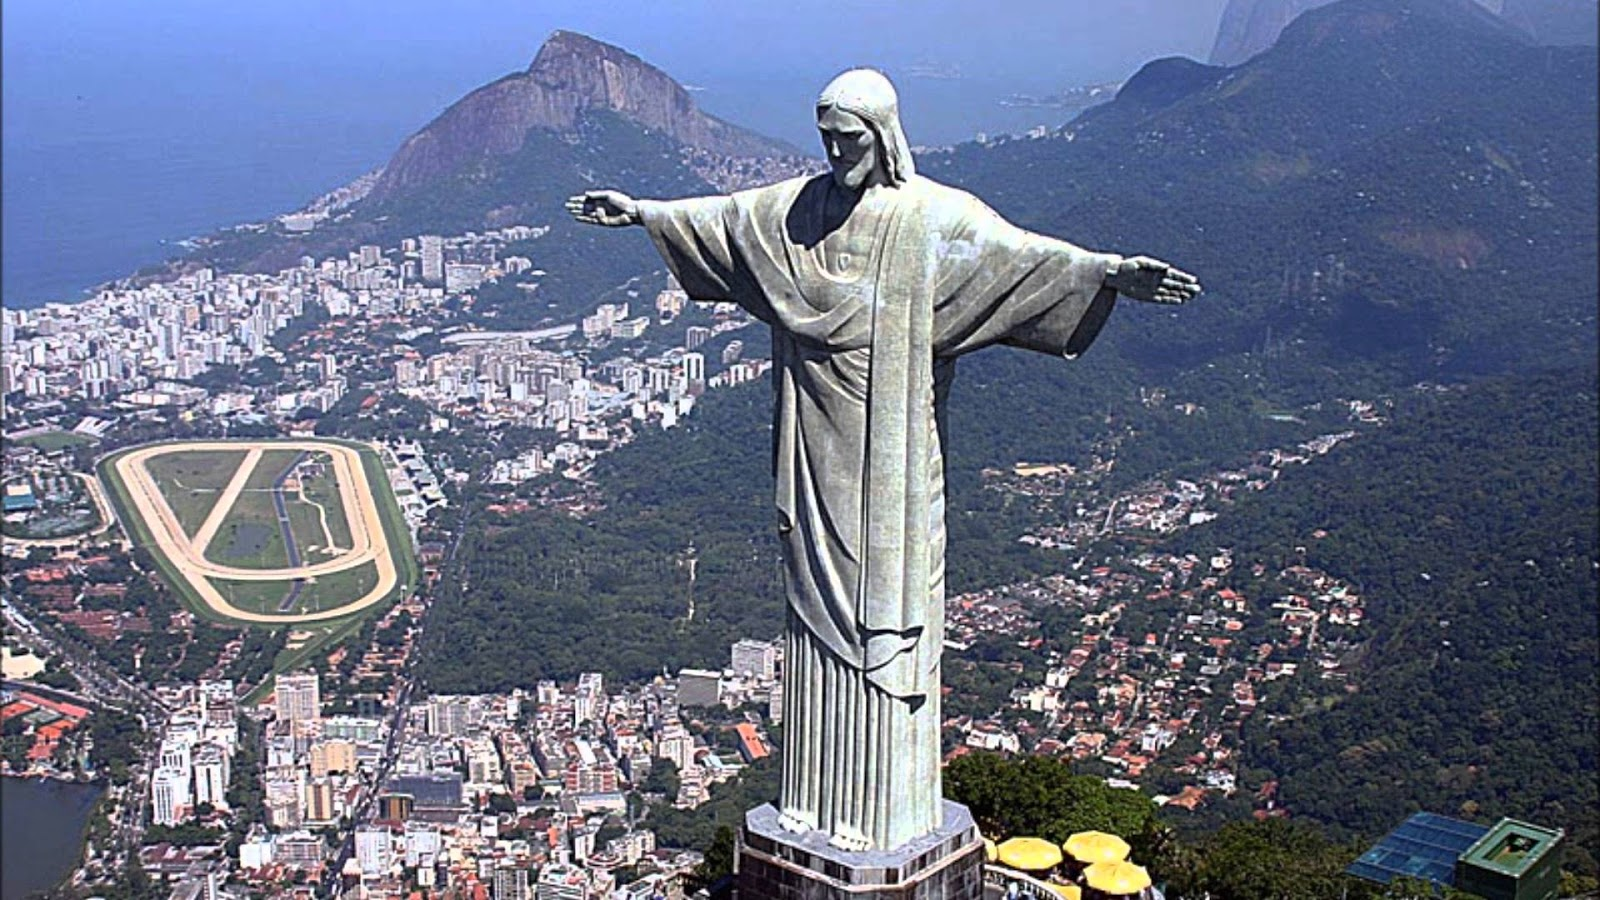 Mindblowing Images Of Christ The Redeemer Hd Wallpaper